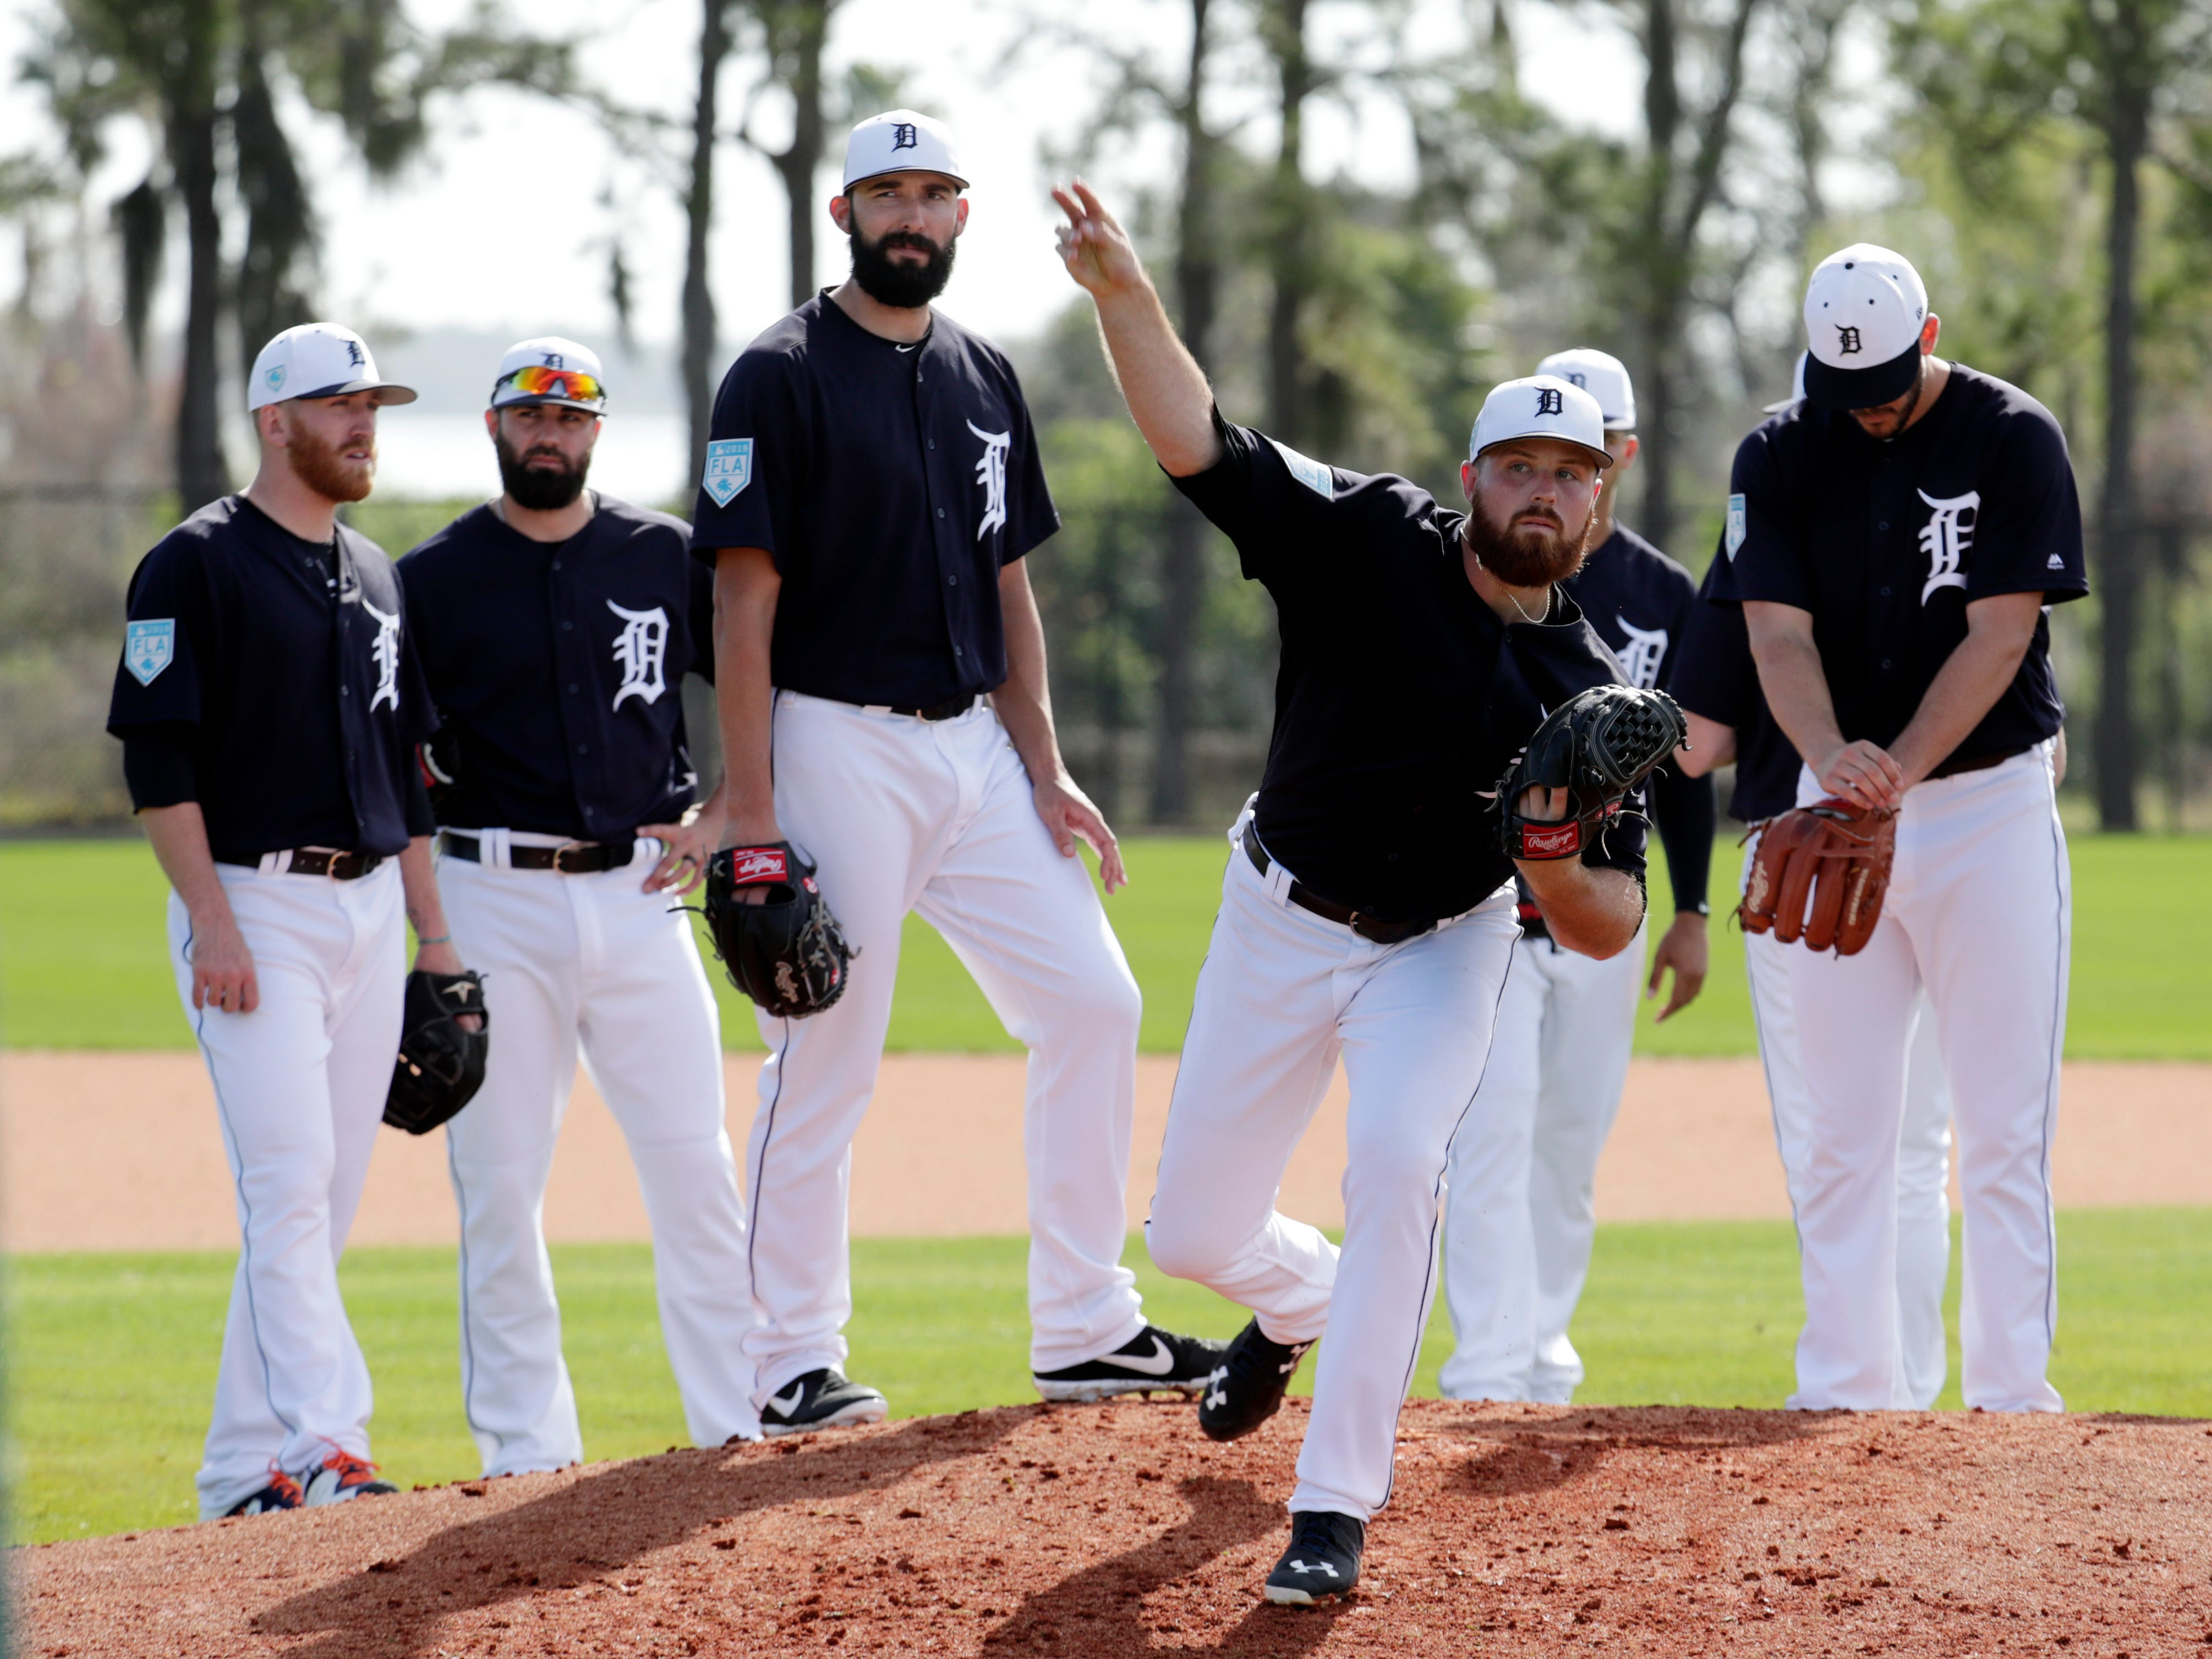 Detroit Tigers relief pitcher Buck Farmer works ona drill at the Tigers spring training baseball facility, Friday, Feb. 15, 2019, in Lakeland, Fla.